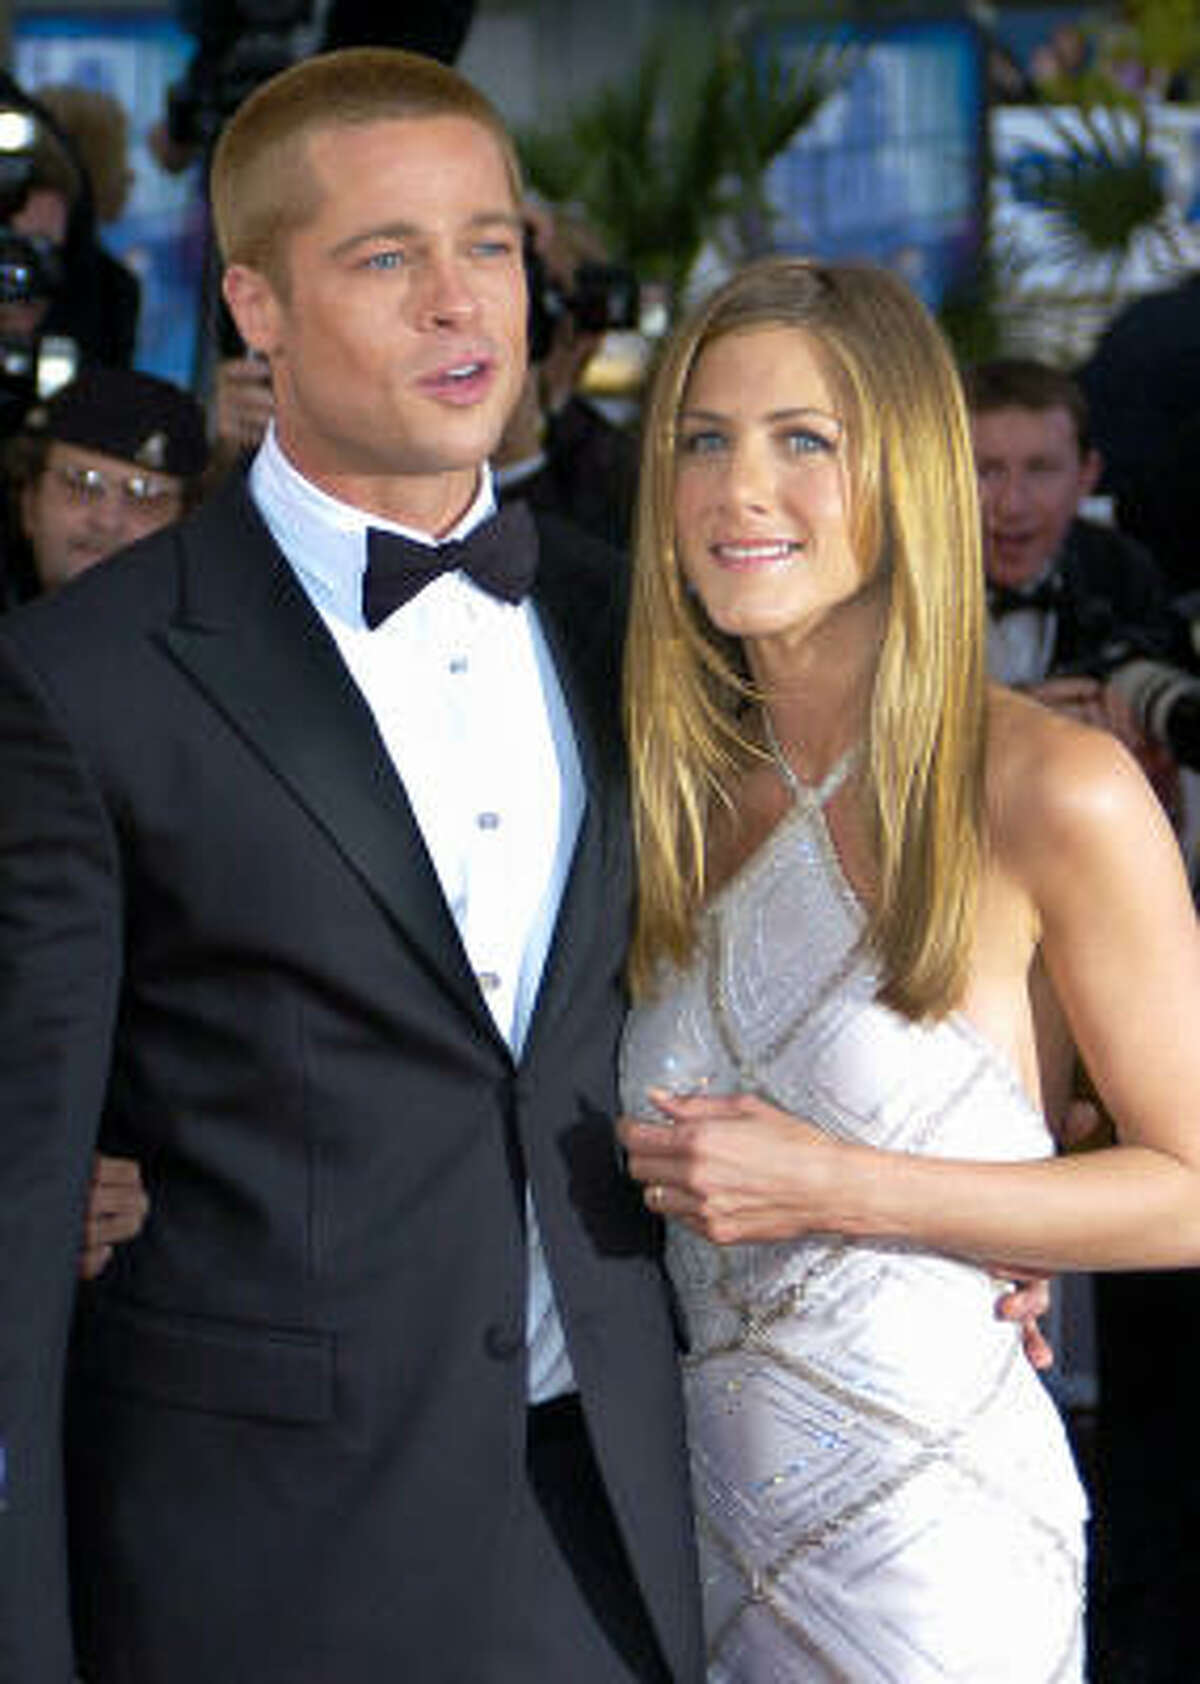 In a story posted on W magazine's Web site, Brad Pitt defends Jennifer Aniston and Angelina Jolie.